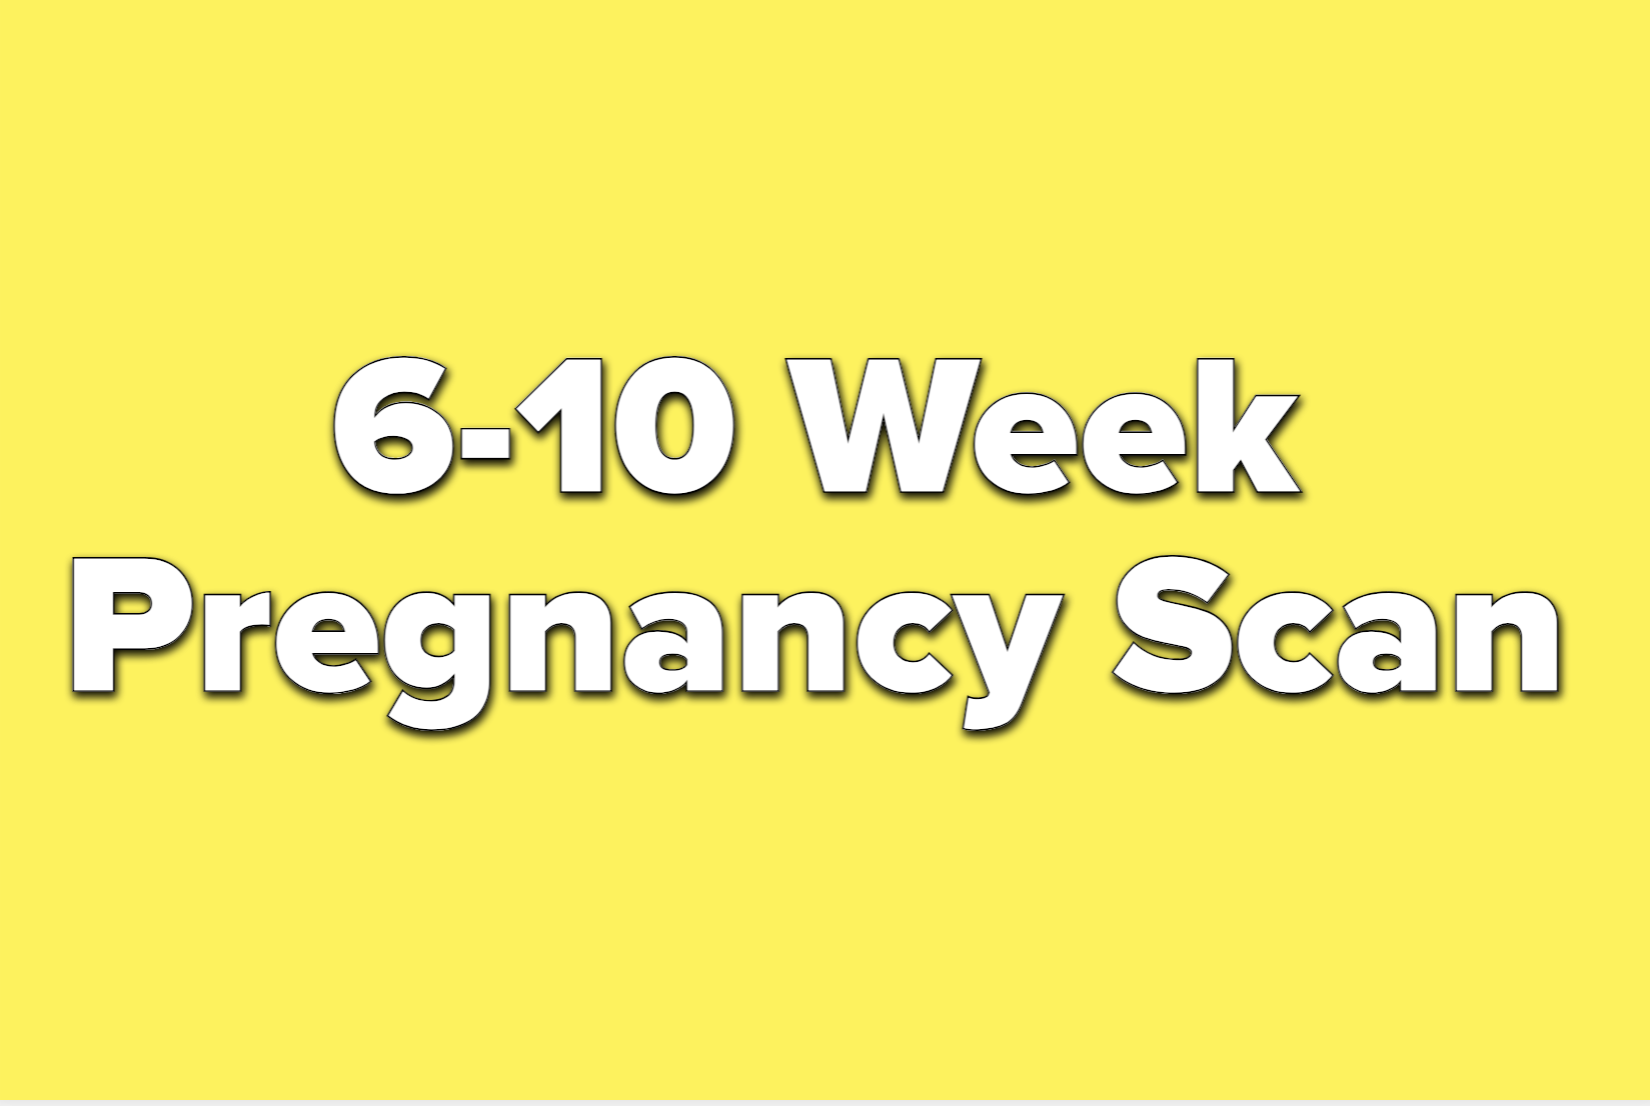 text reads 6-10 week pregnancy scan